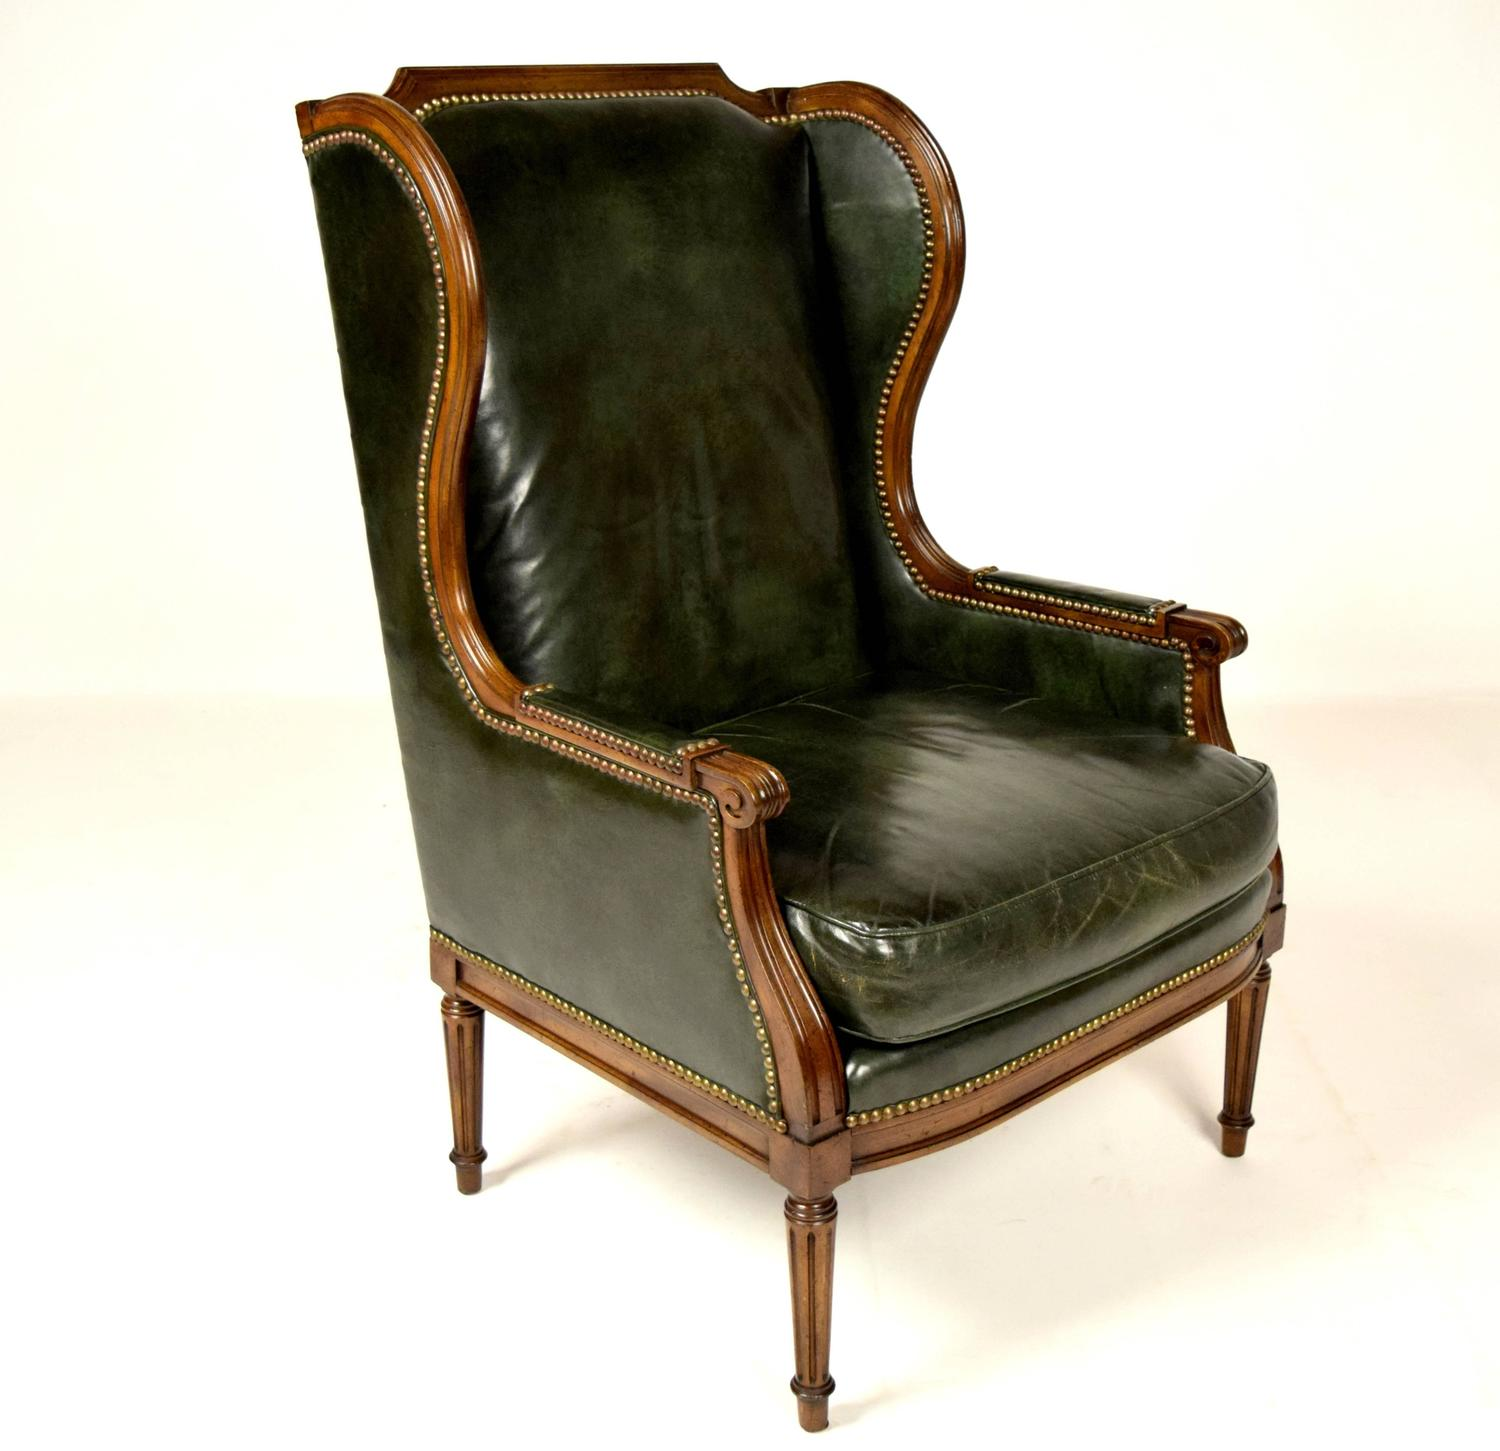 Used Wingback Chairs Vintage Hickory Leather Wingback Chair For Sale At 1stdibs